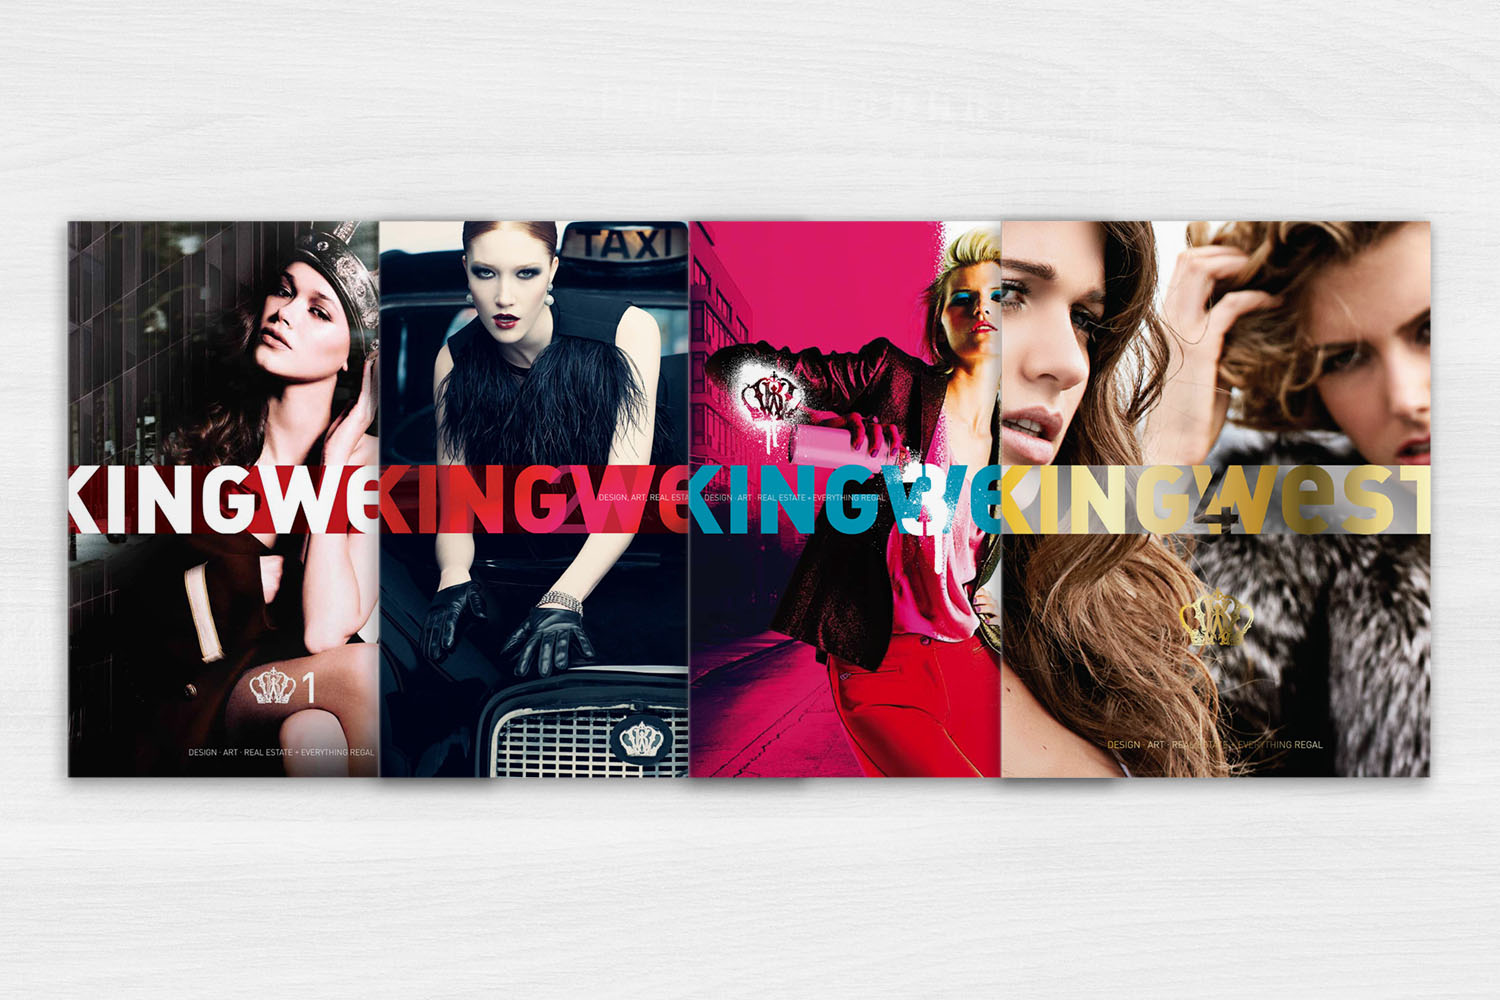 KINGWEST_Covers_4